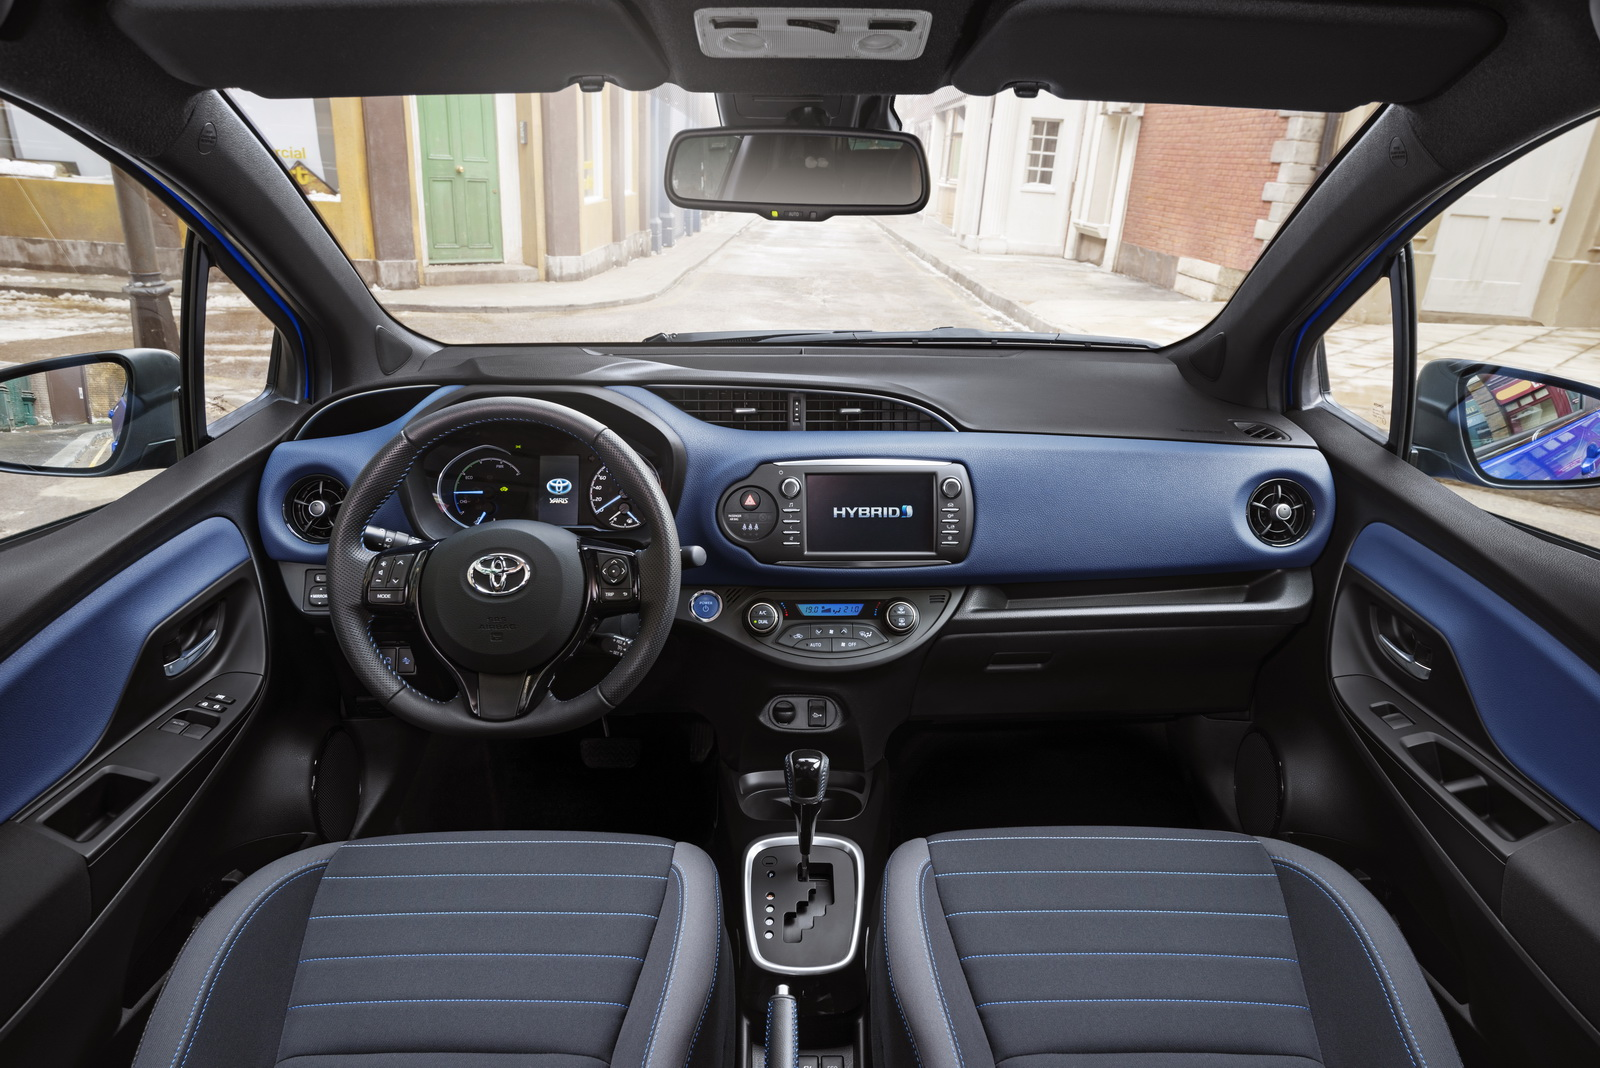 toyota yaris interior rent a car Ibiza